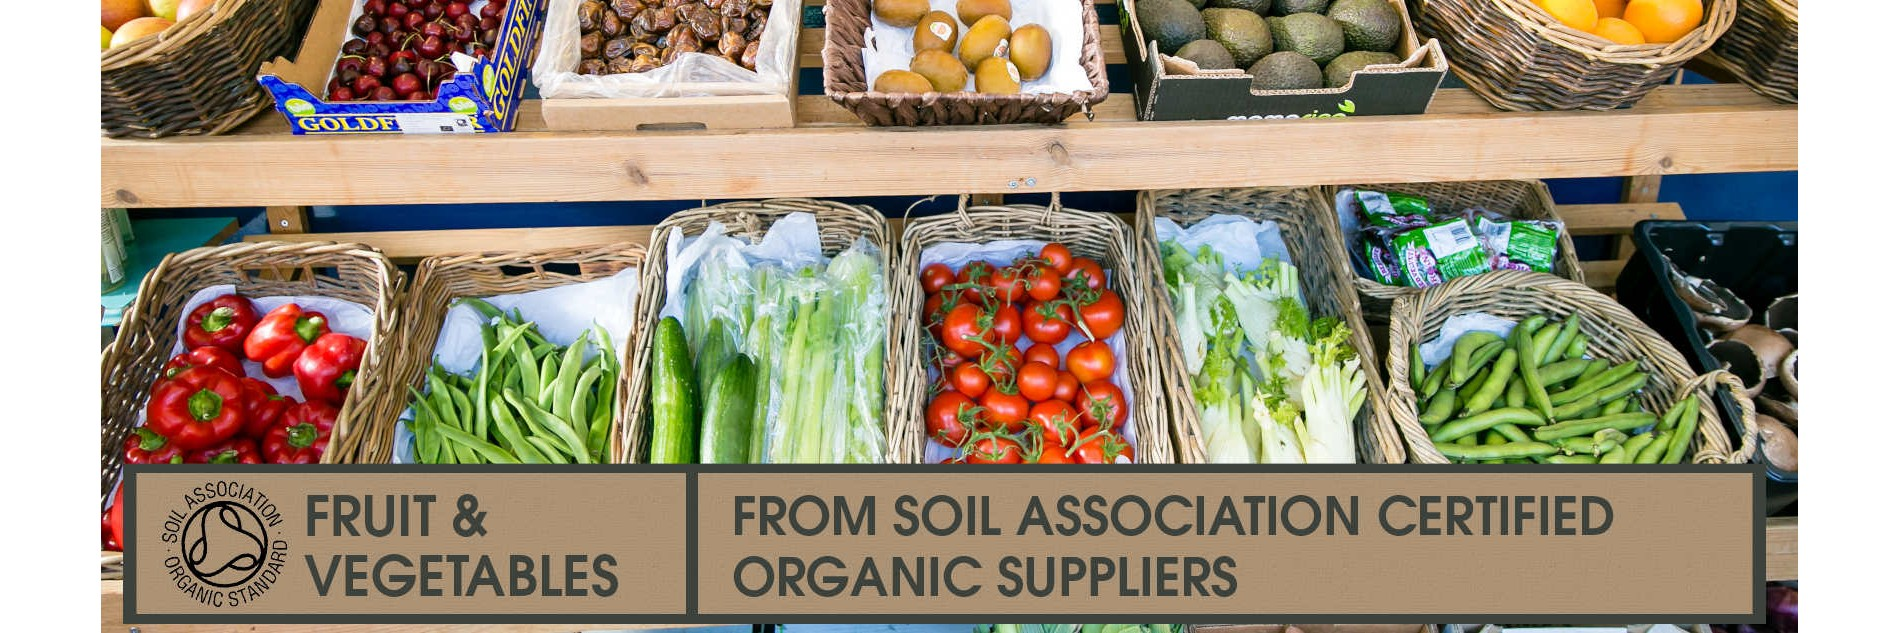 Fruit and vegetables from Soil Association certified suppliers